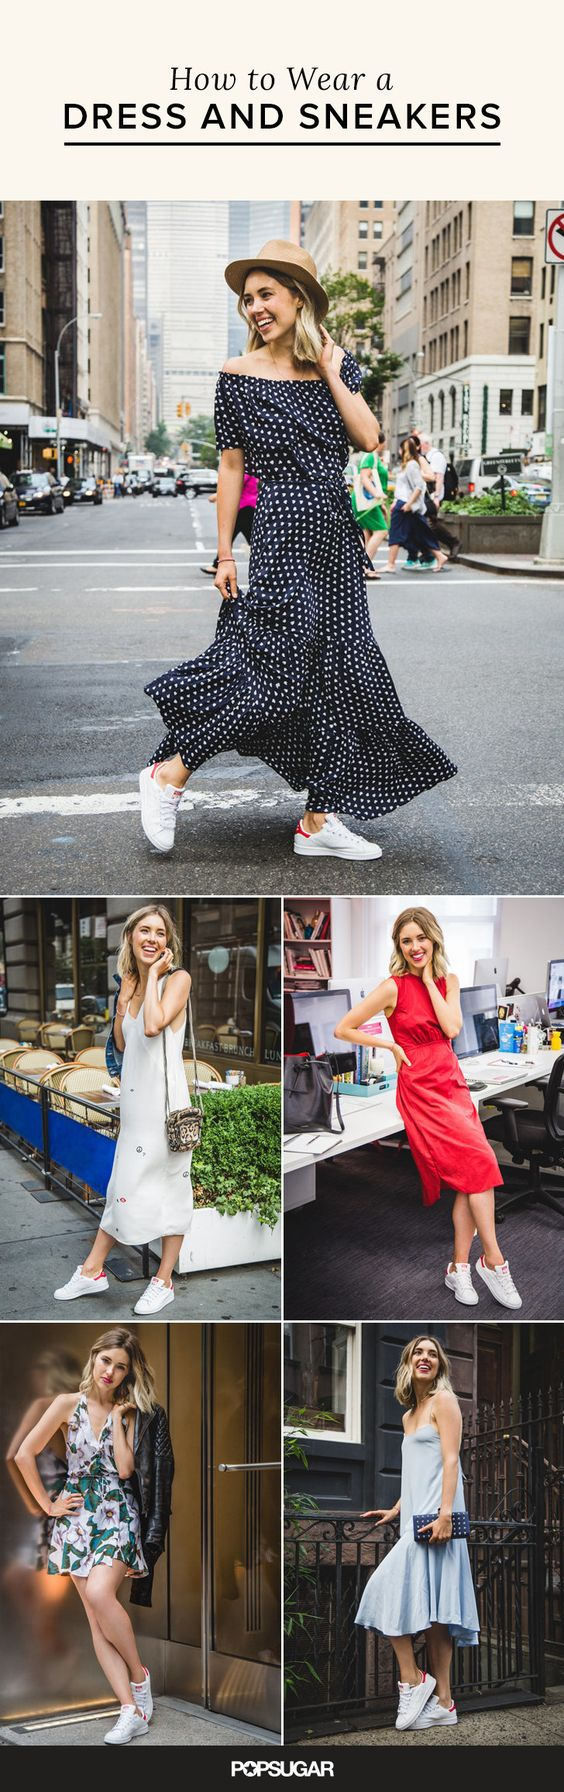 Casual and relaxed wearing sneakers with a dress